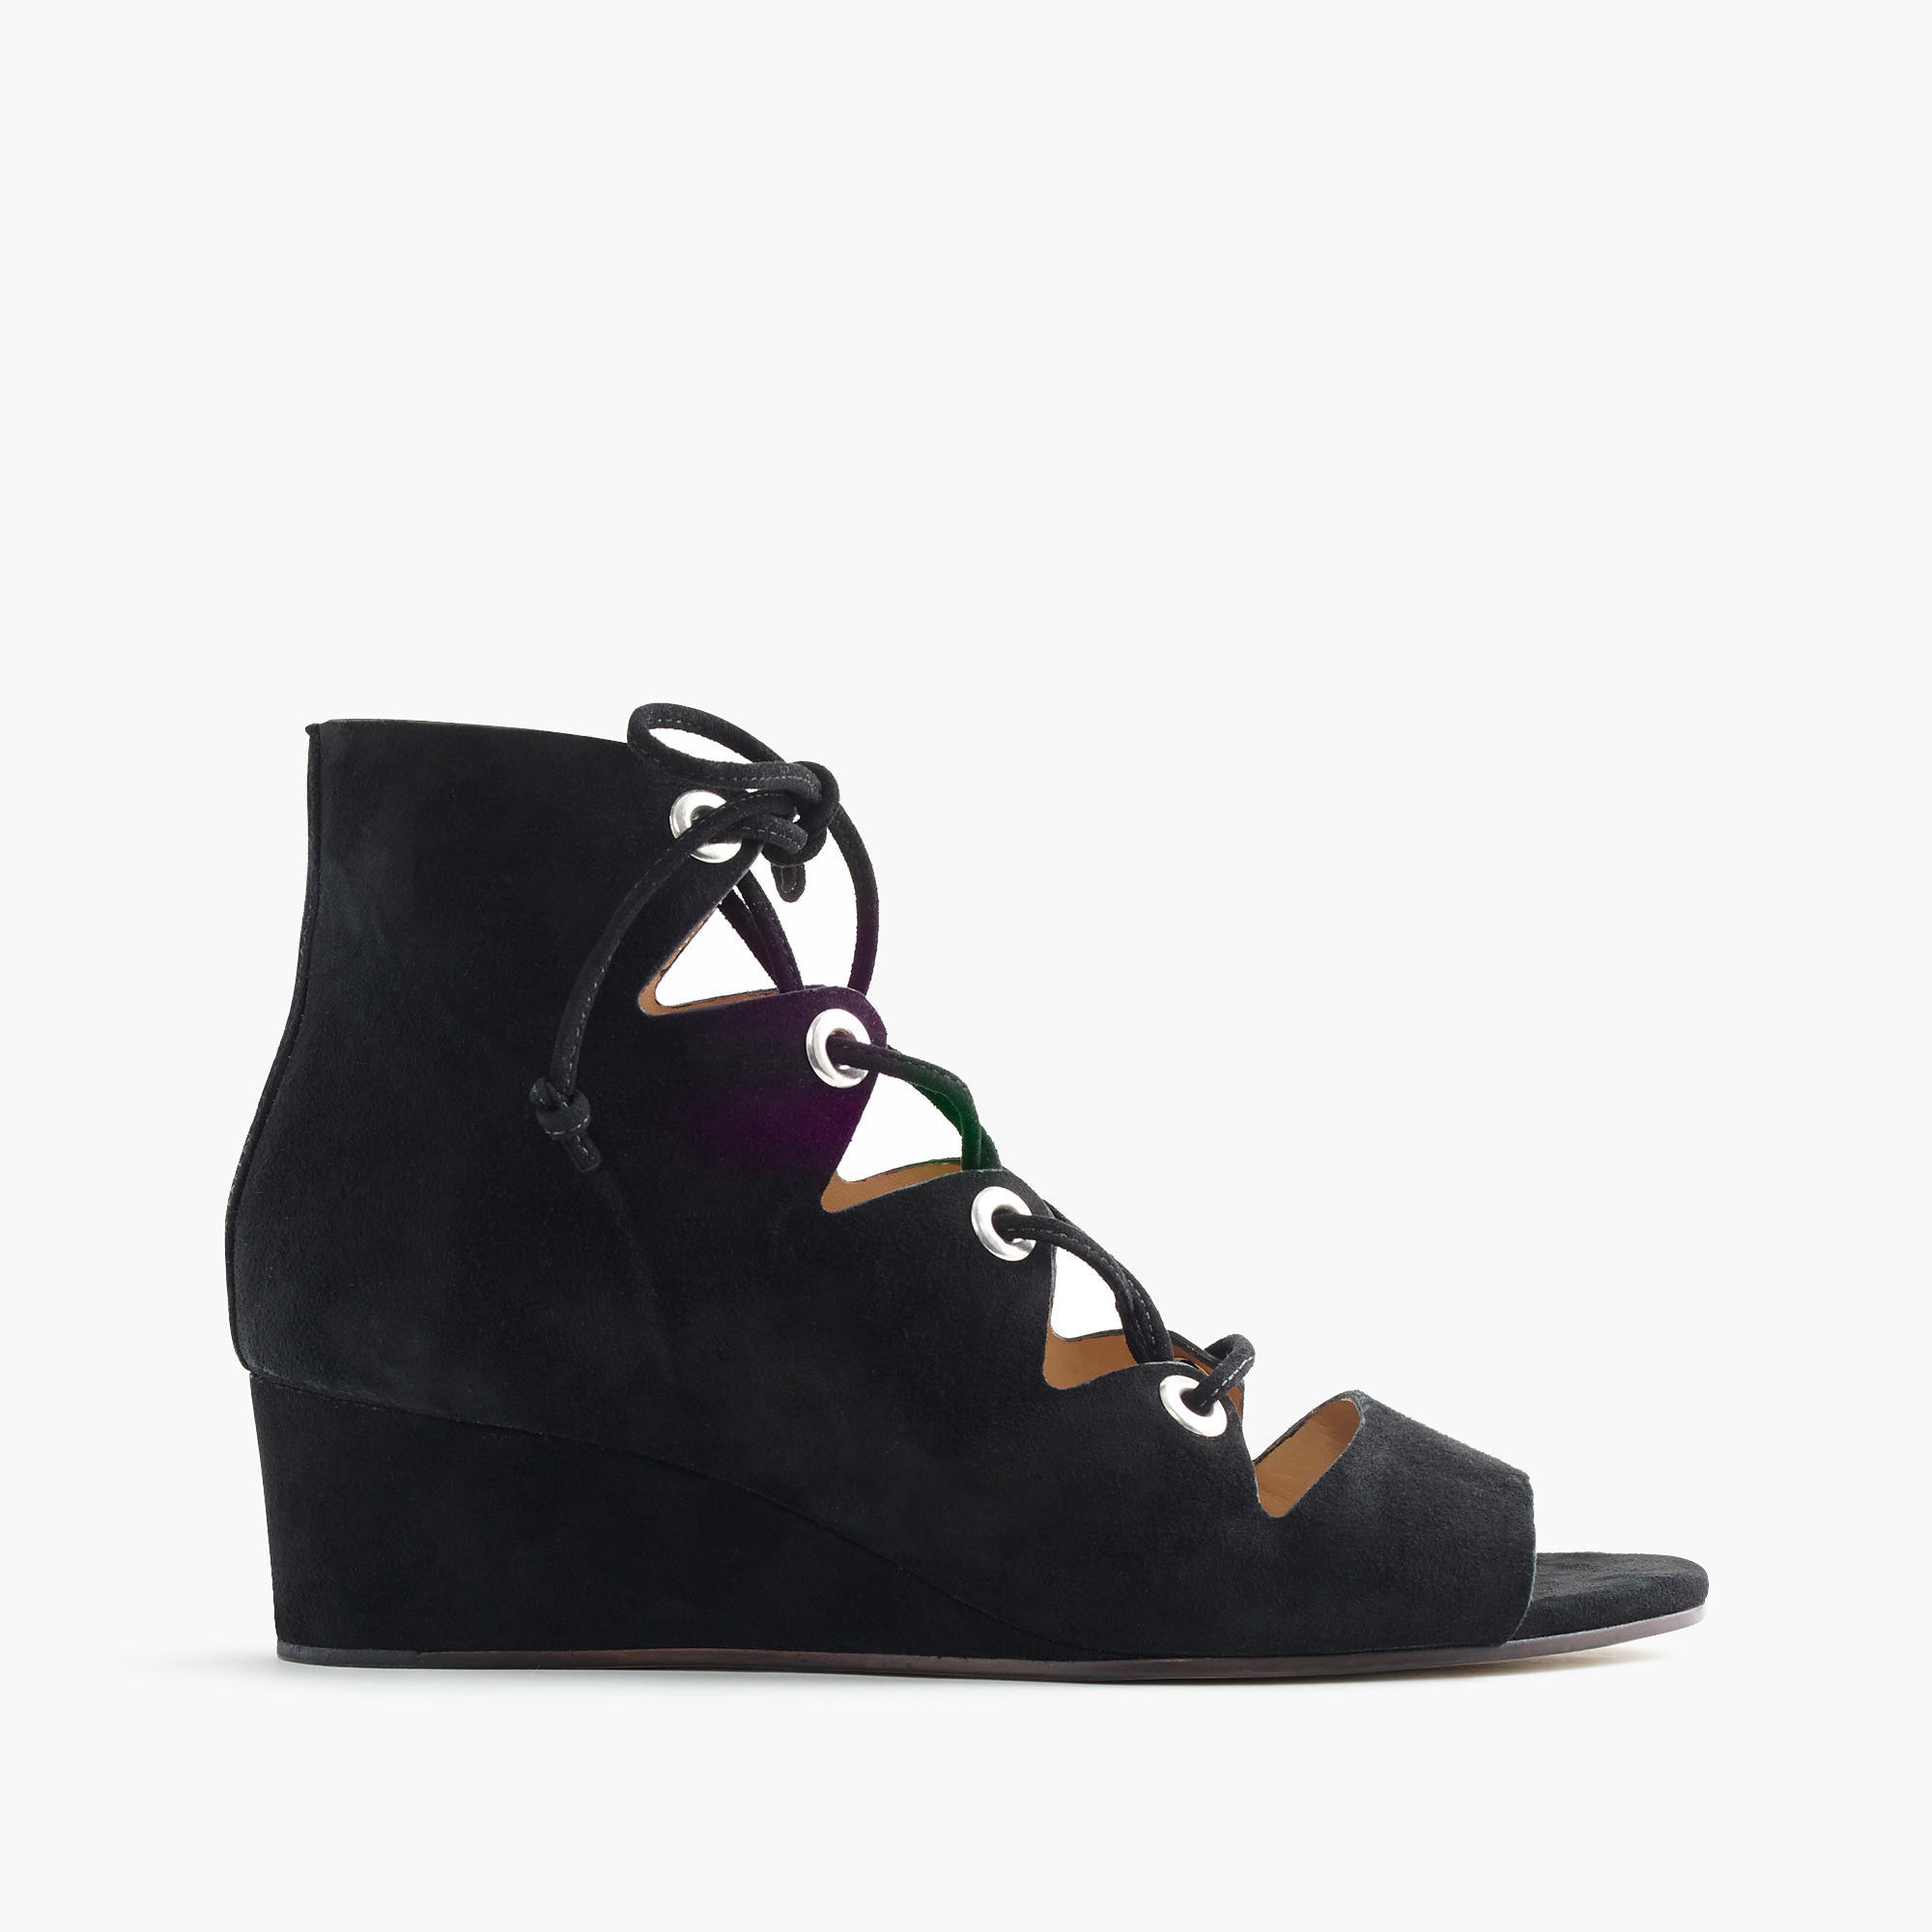 4c41b24c1582 Lyst - J.Crew Laila Lace-up Wedges In Suede in Black